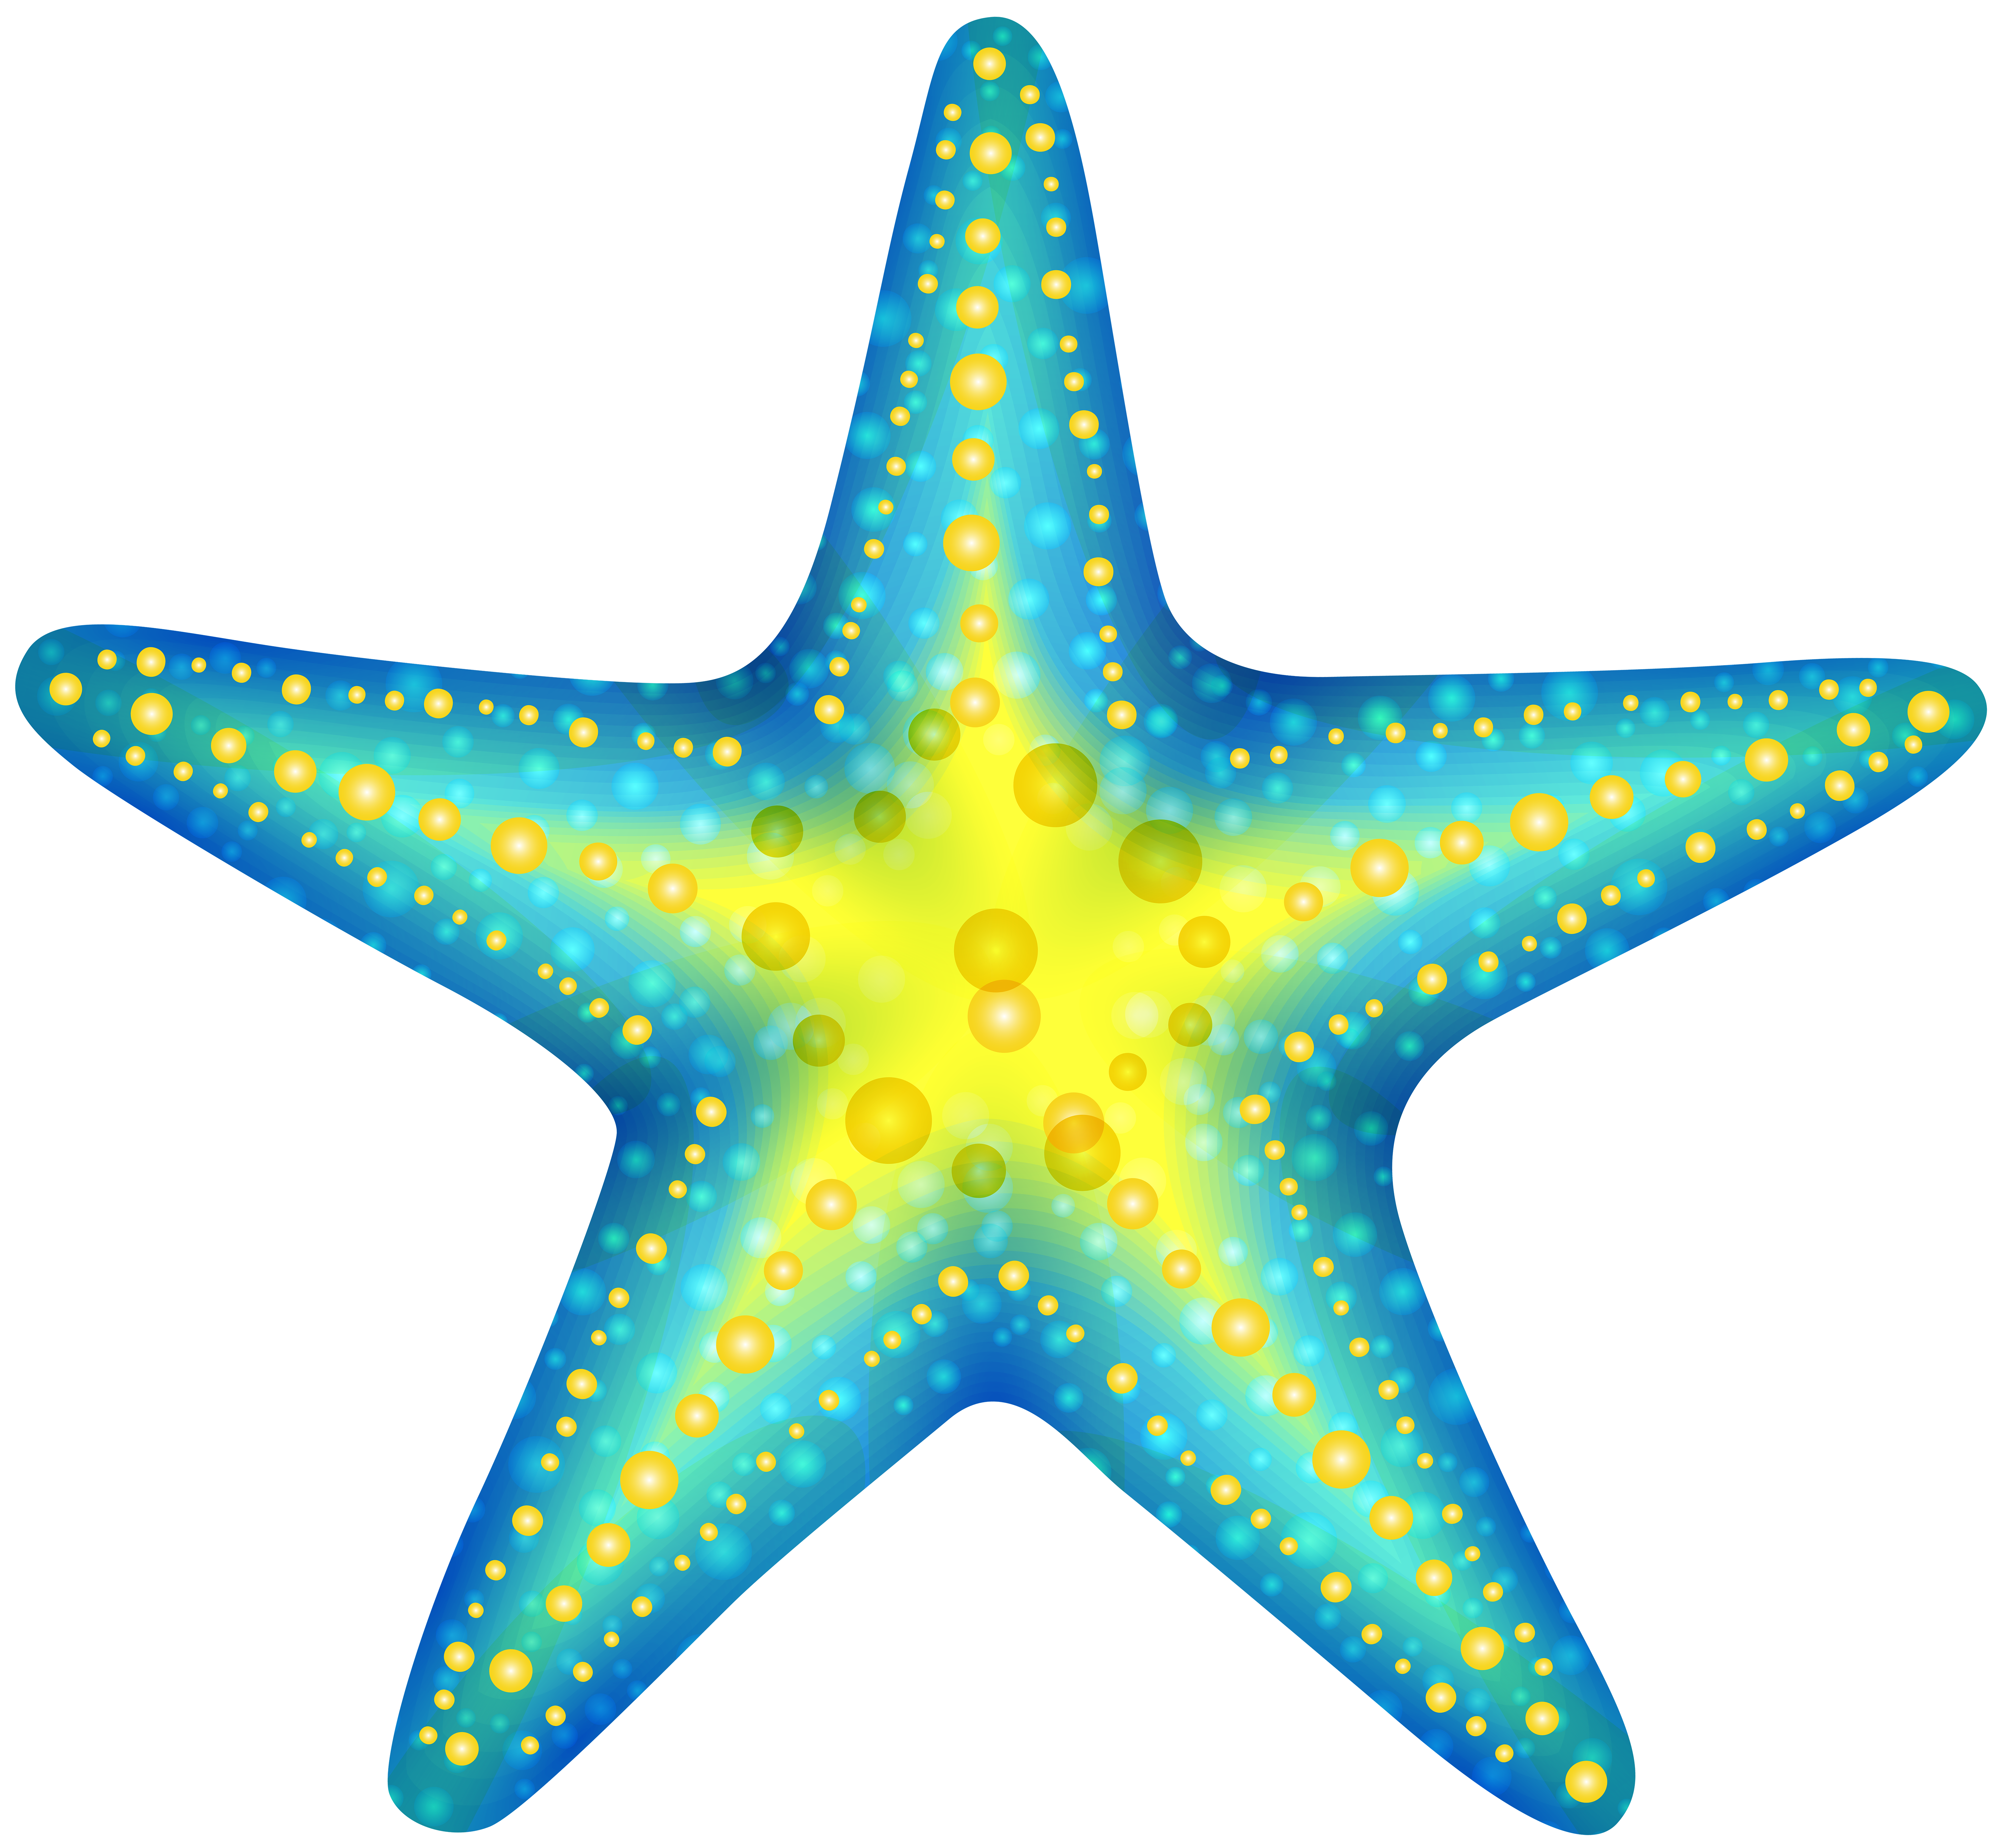 Blue png clip art. 3 clipart starfish svg black and white